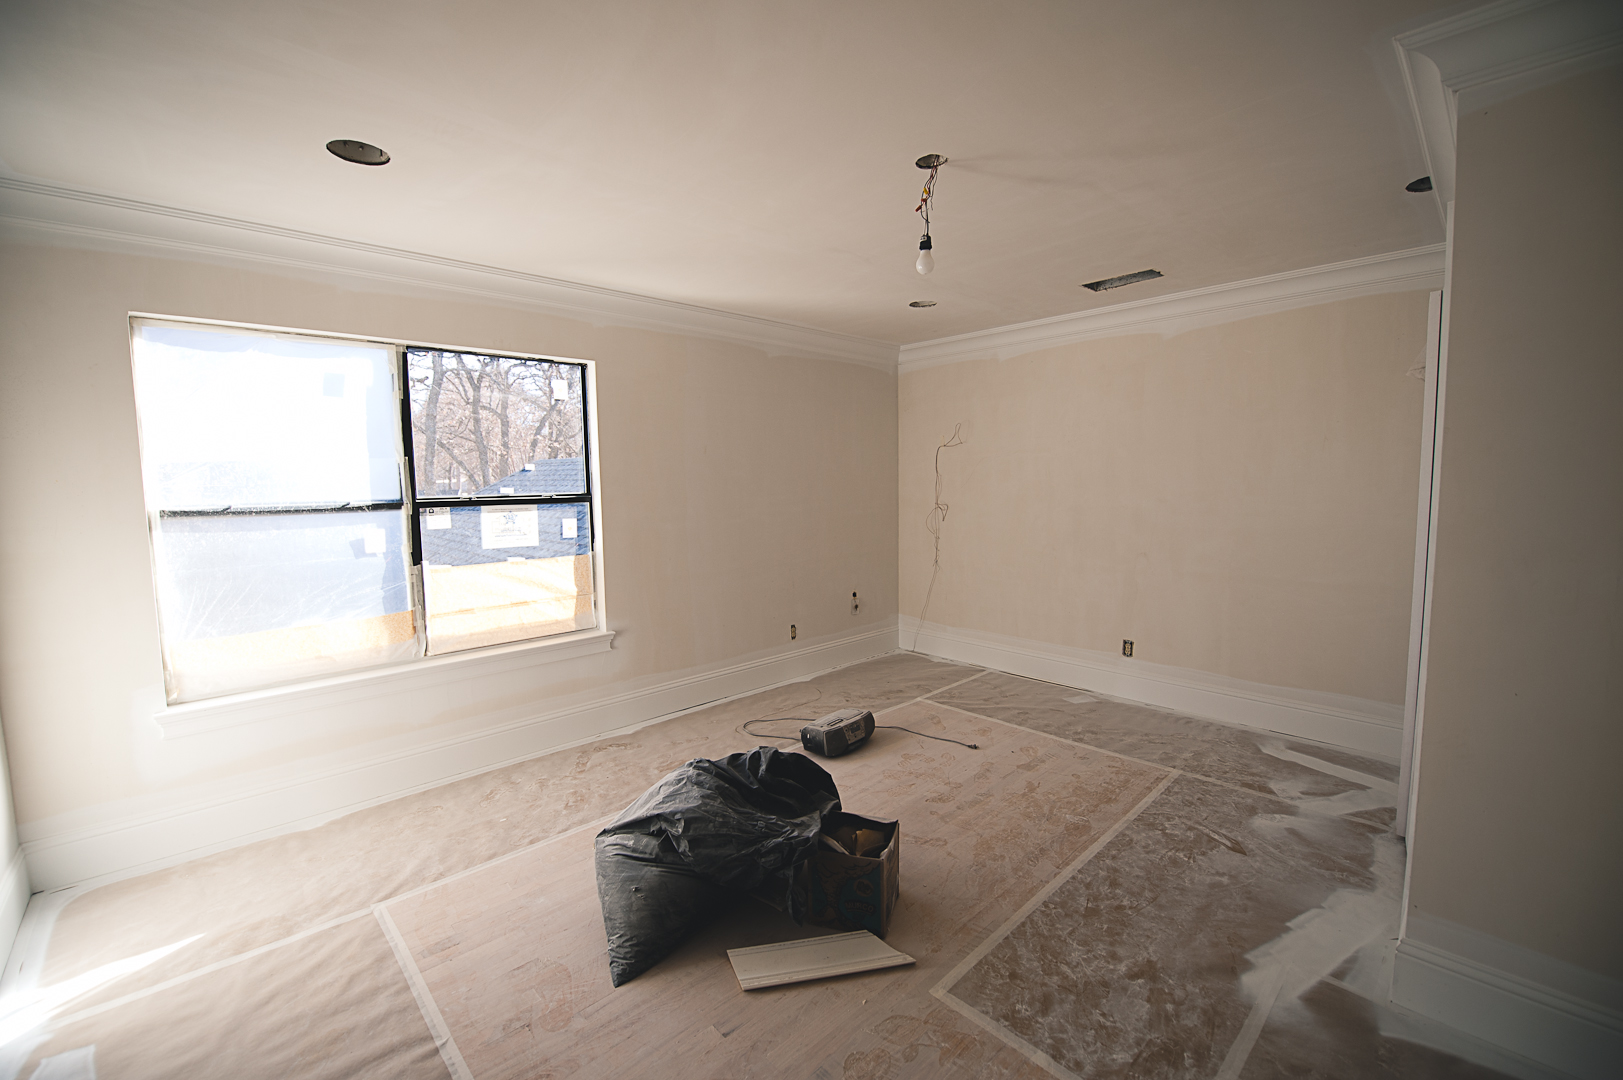 During: The doors were replaced with windows after the balcony was demolished, and the closet was expanded.